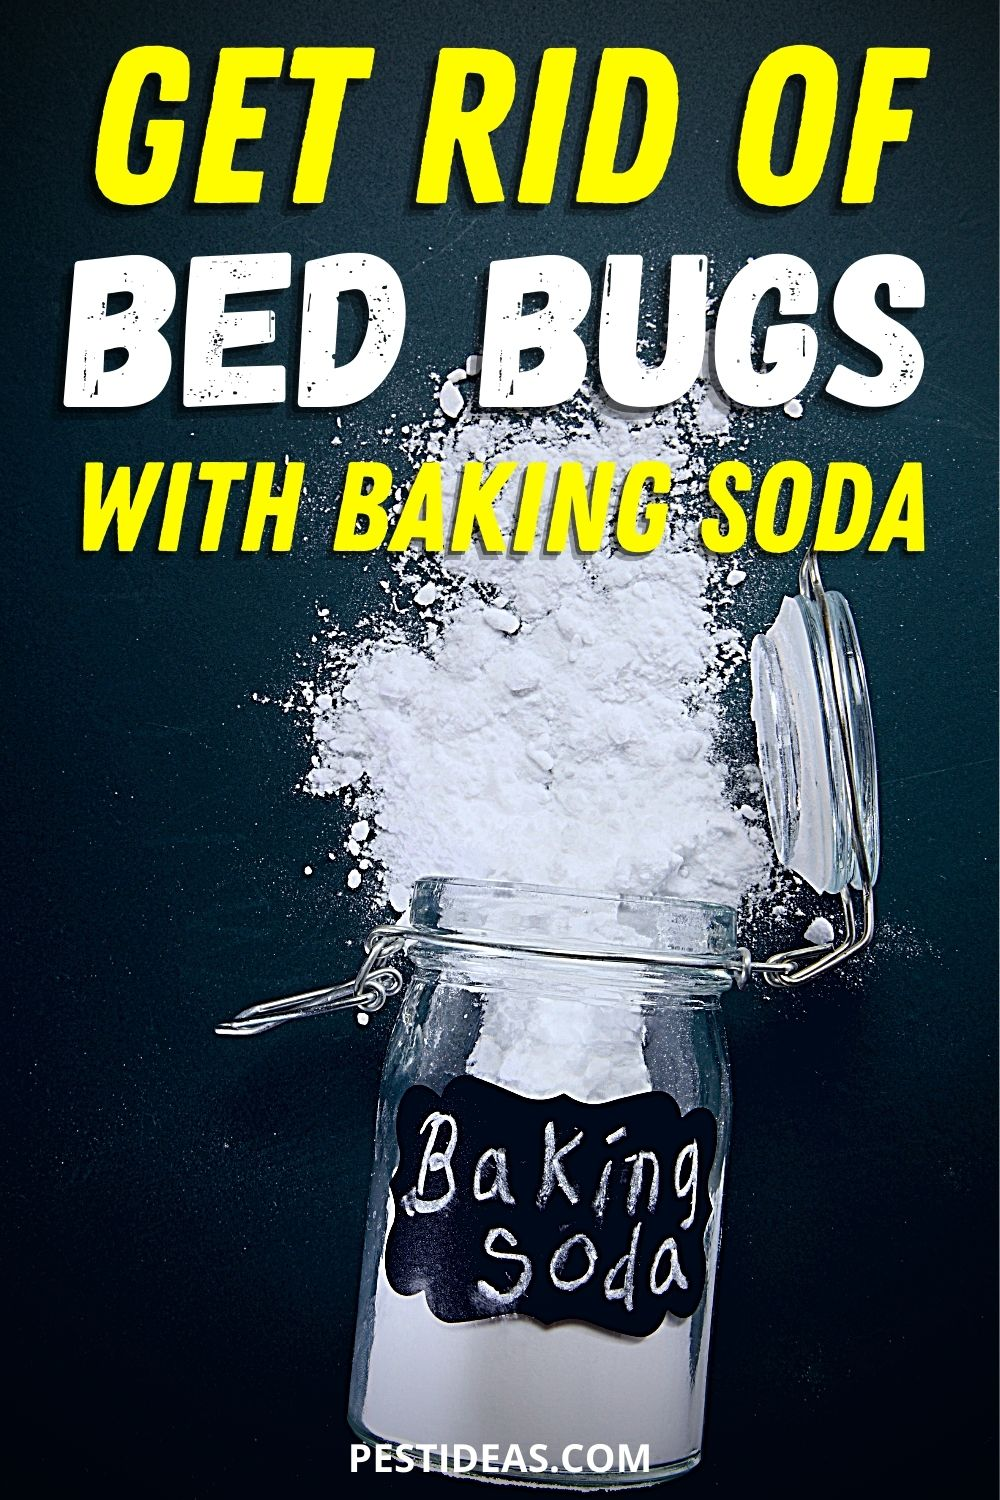 Get Rid of Bed Bugs With Baking Soda